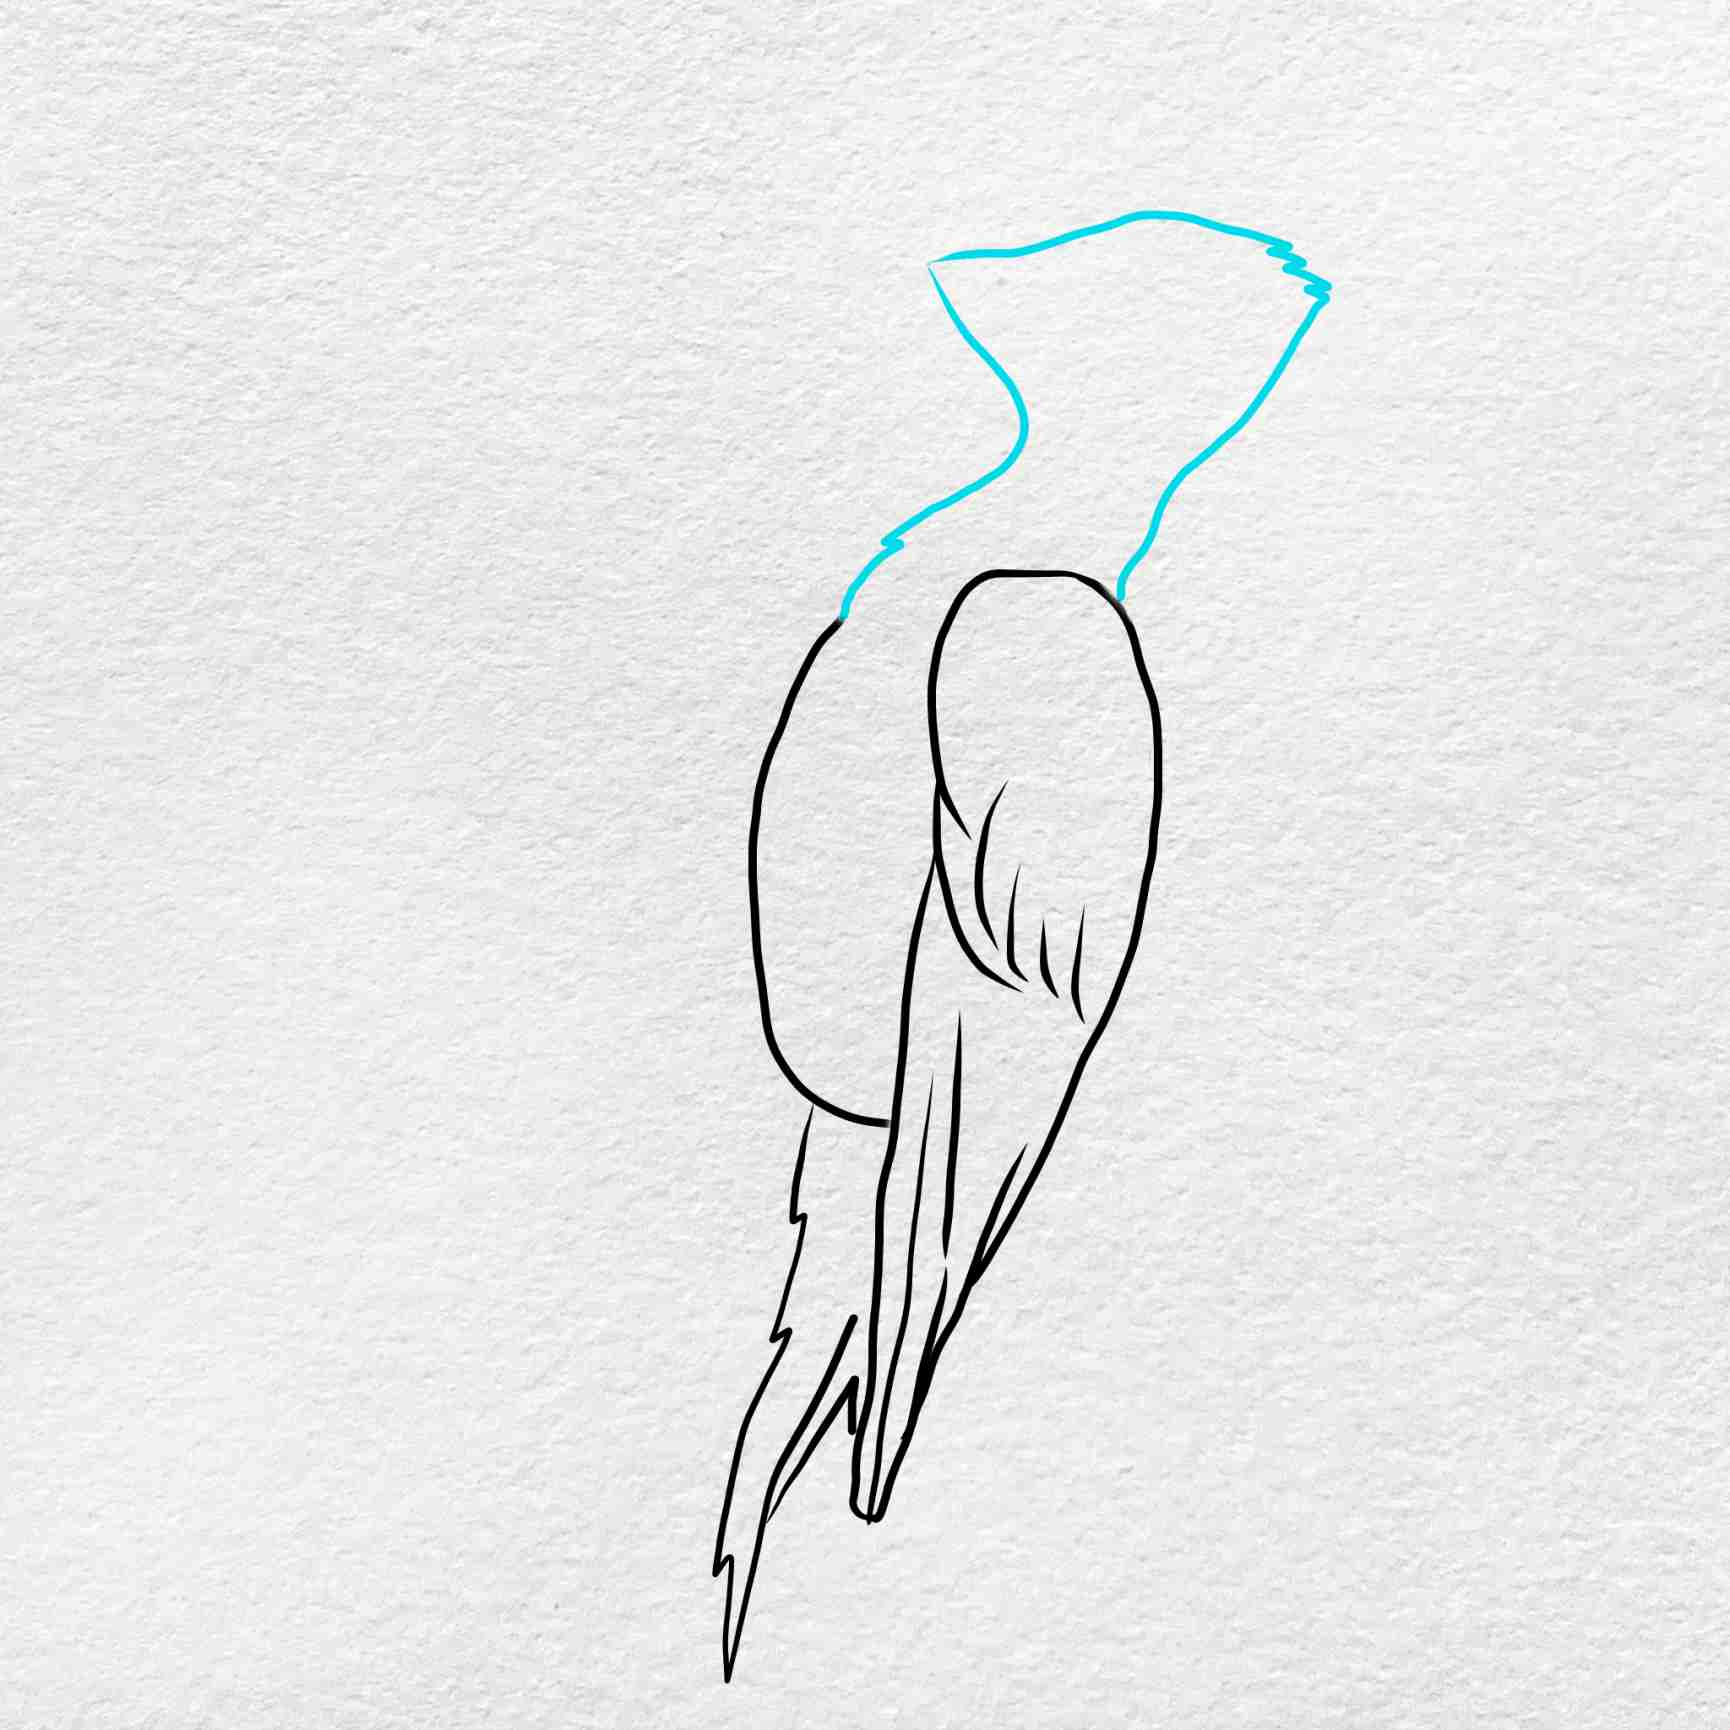 How To Draw A Woodpecker: Step 4